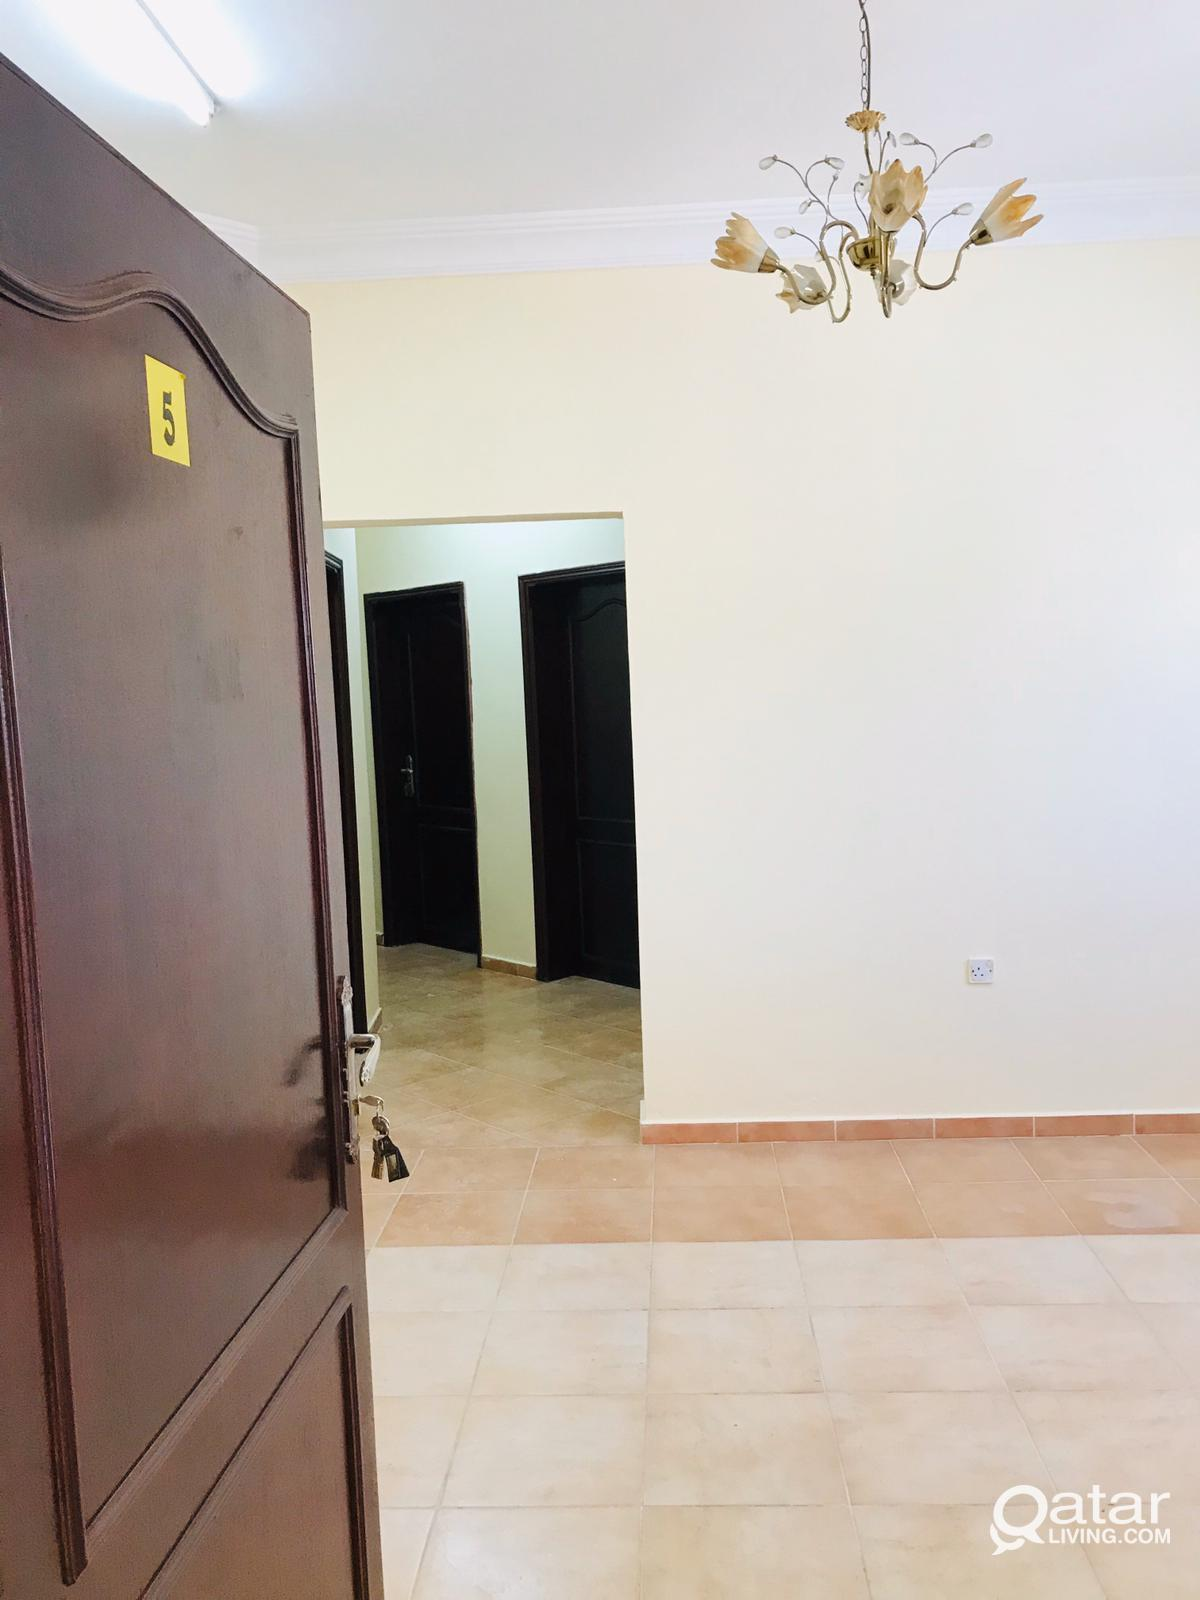 3BHK apartment in Old Al Ghanim limited offers